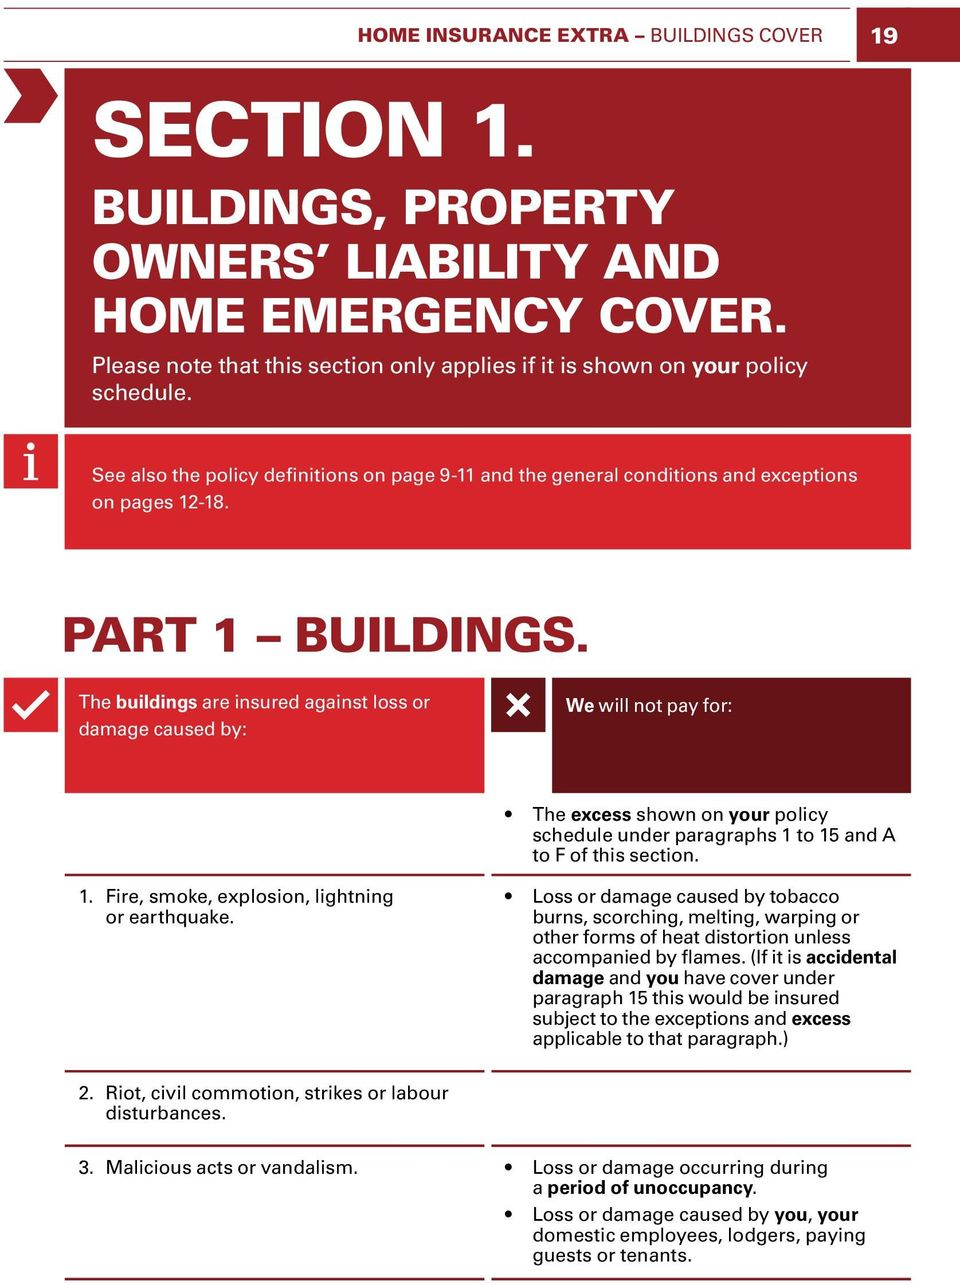 The buildings are insured against loss or damage caused by: We will not pay for: The excess shown on your policy schedule under paragraphs 1 to 15 and A to F of this section. 1. Fire, smoke, explosion, lightning or earthquake.